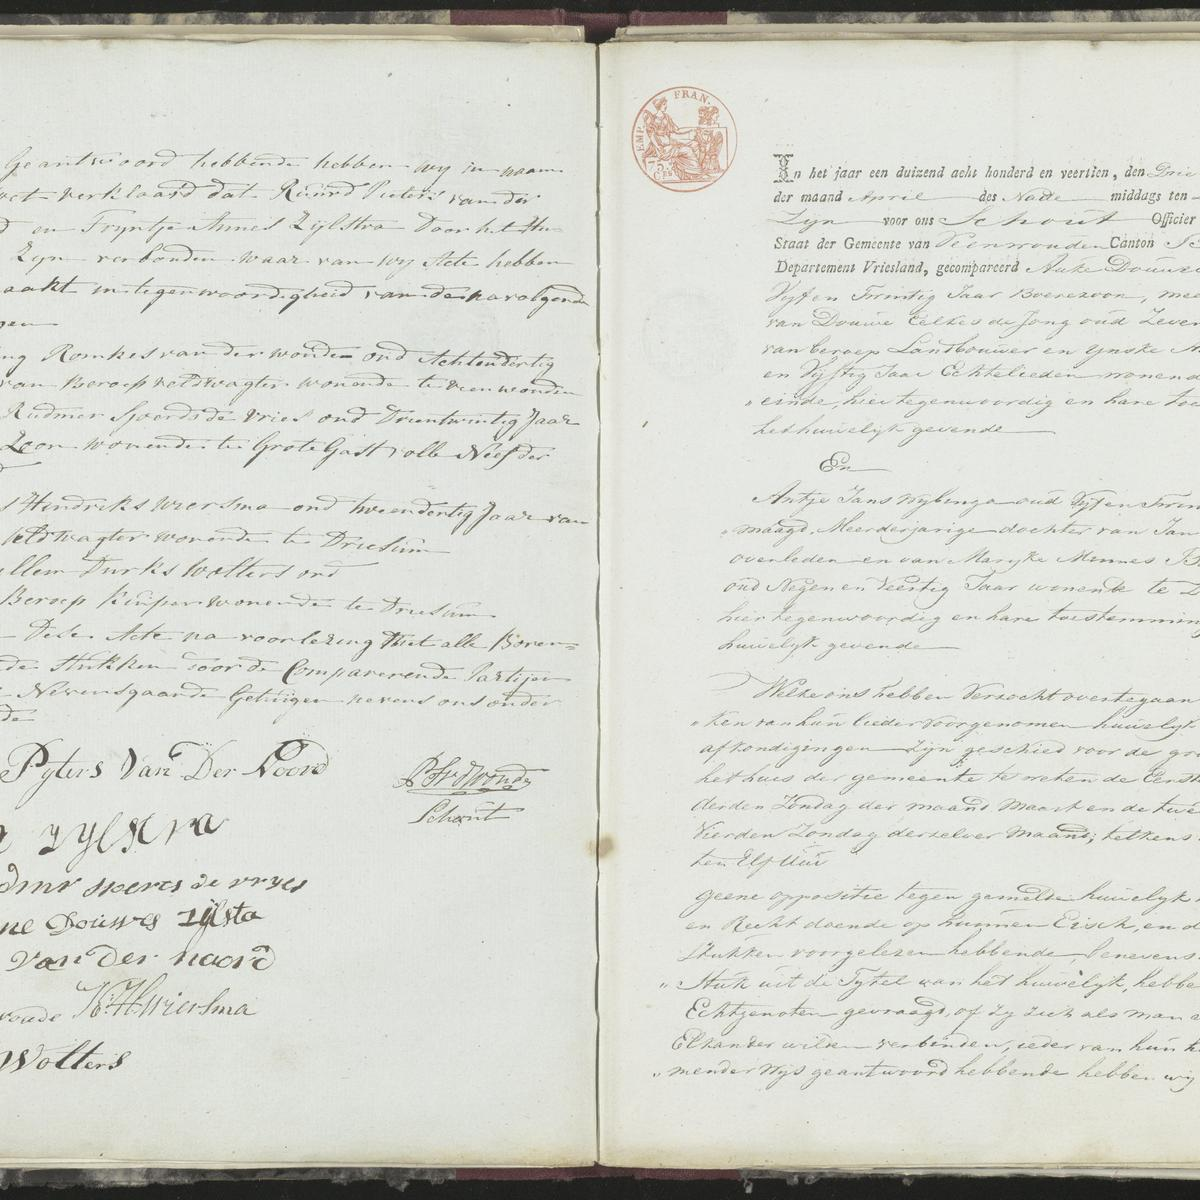 Civil registry of marriages, Veenwouden, 1814, records 2-3